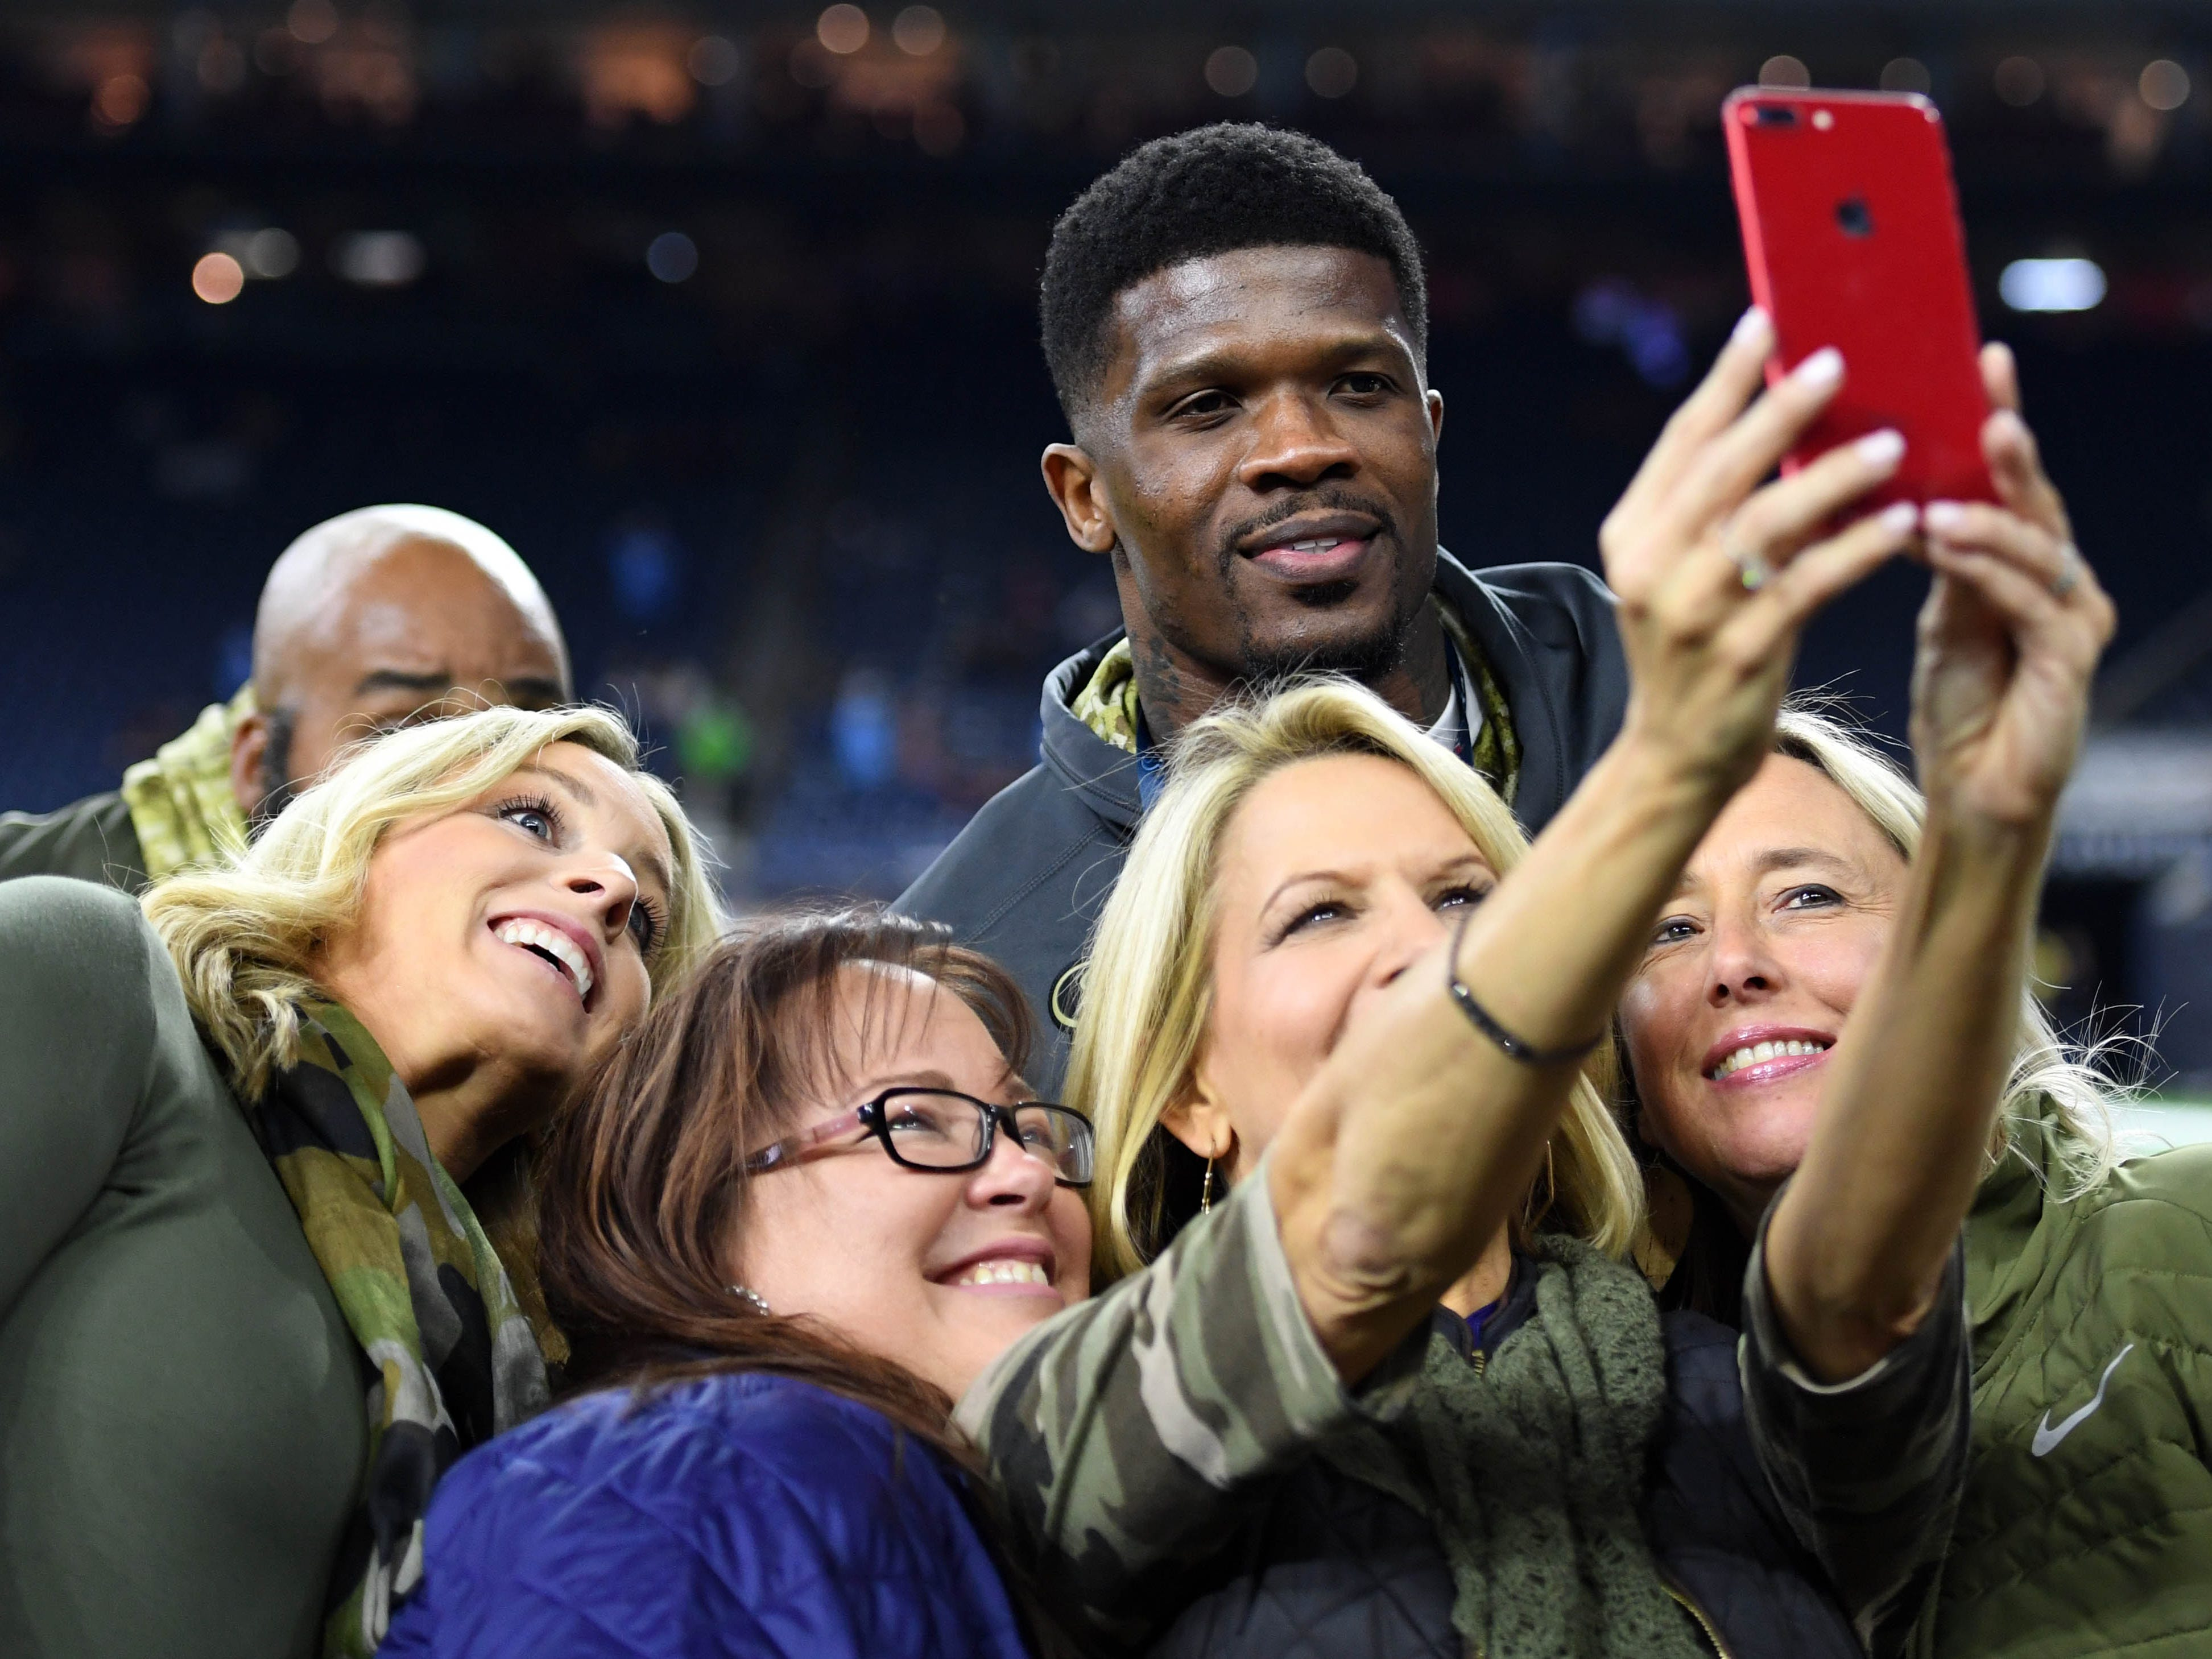 Former Houston Texans wide receiver Andre Johnson takes a photo with fans before the game against the Tennessee Titans at NRG Stadium.